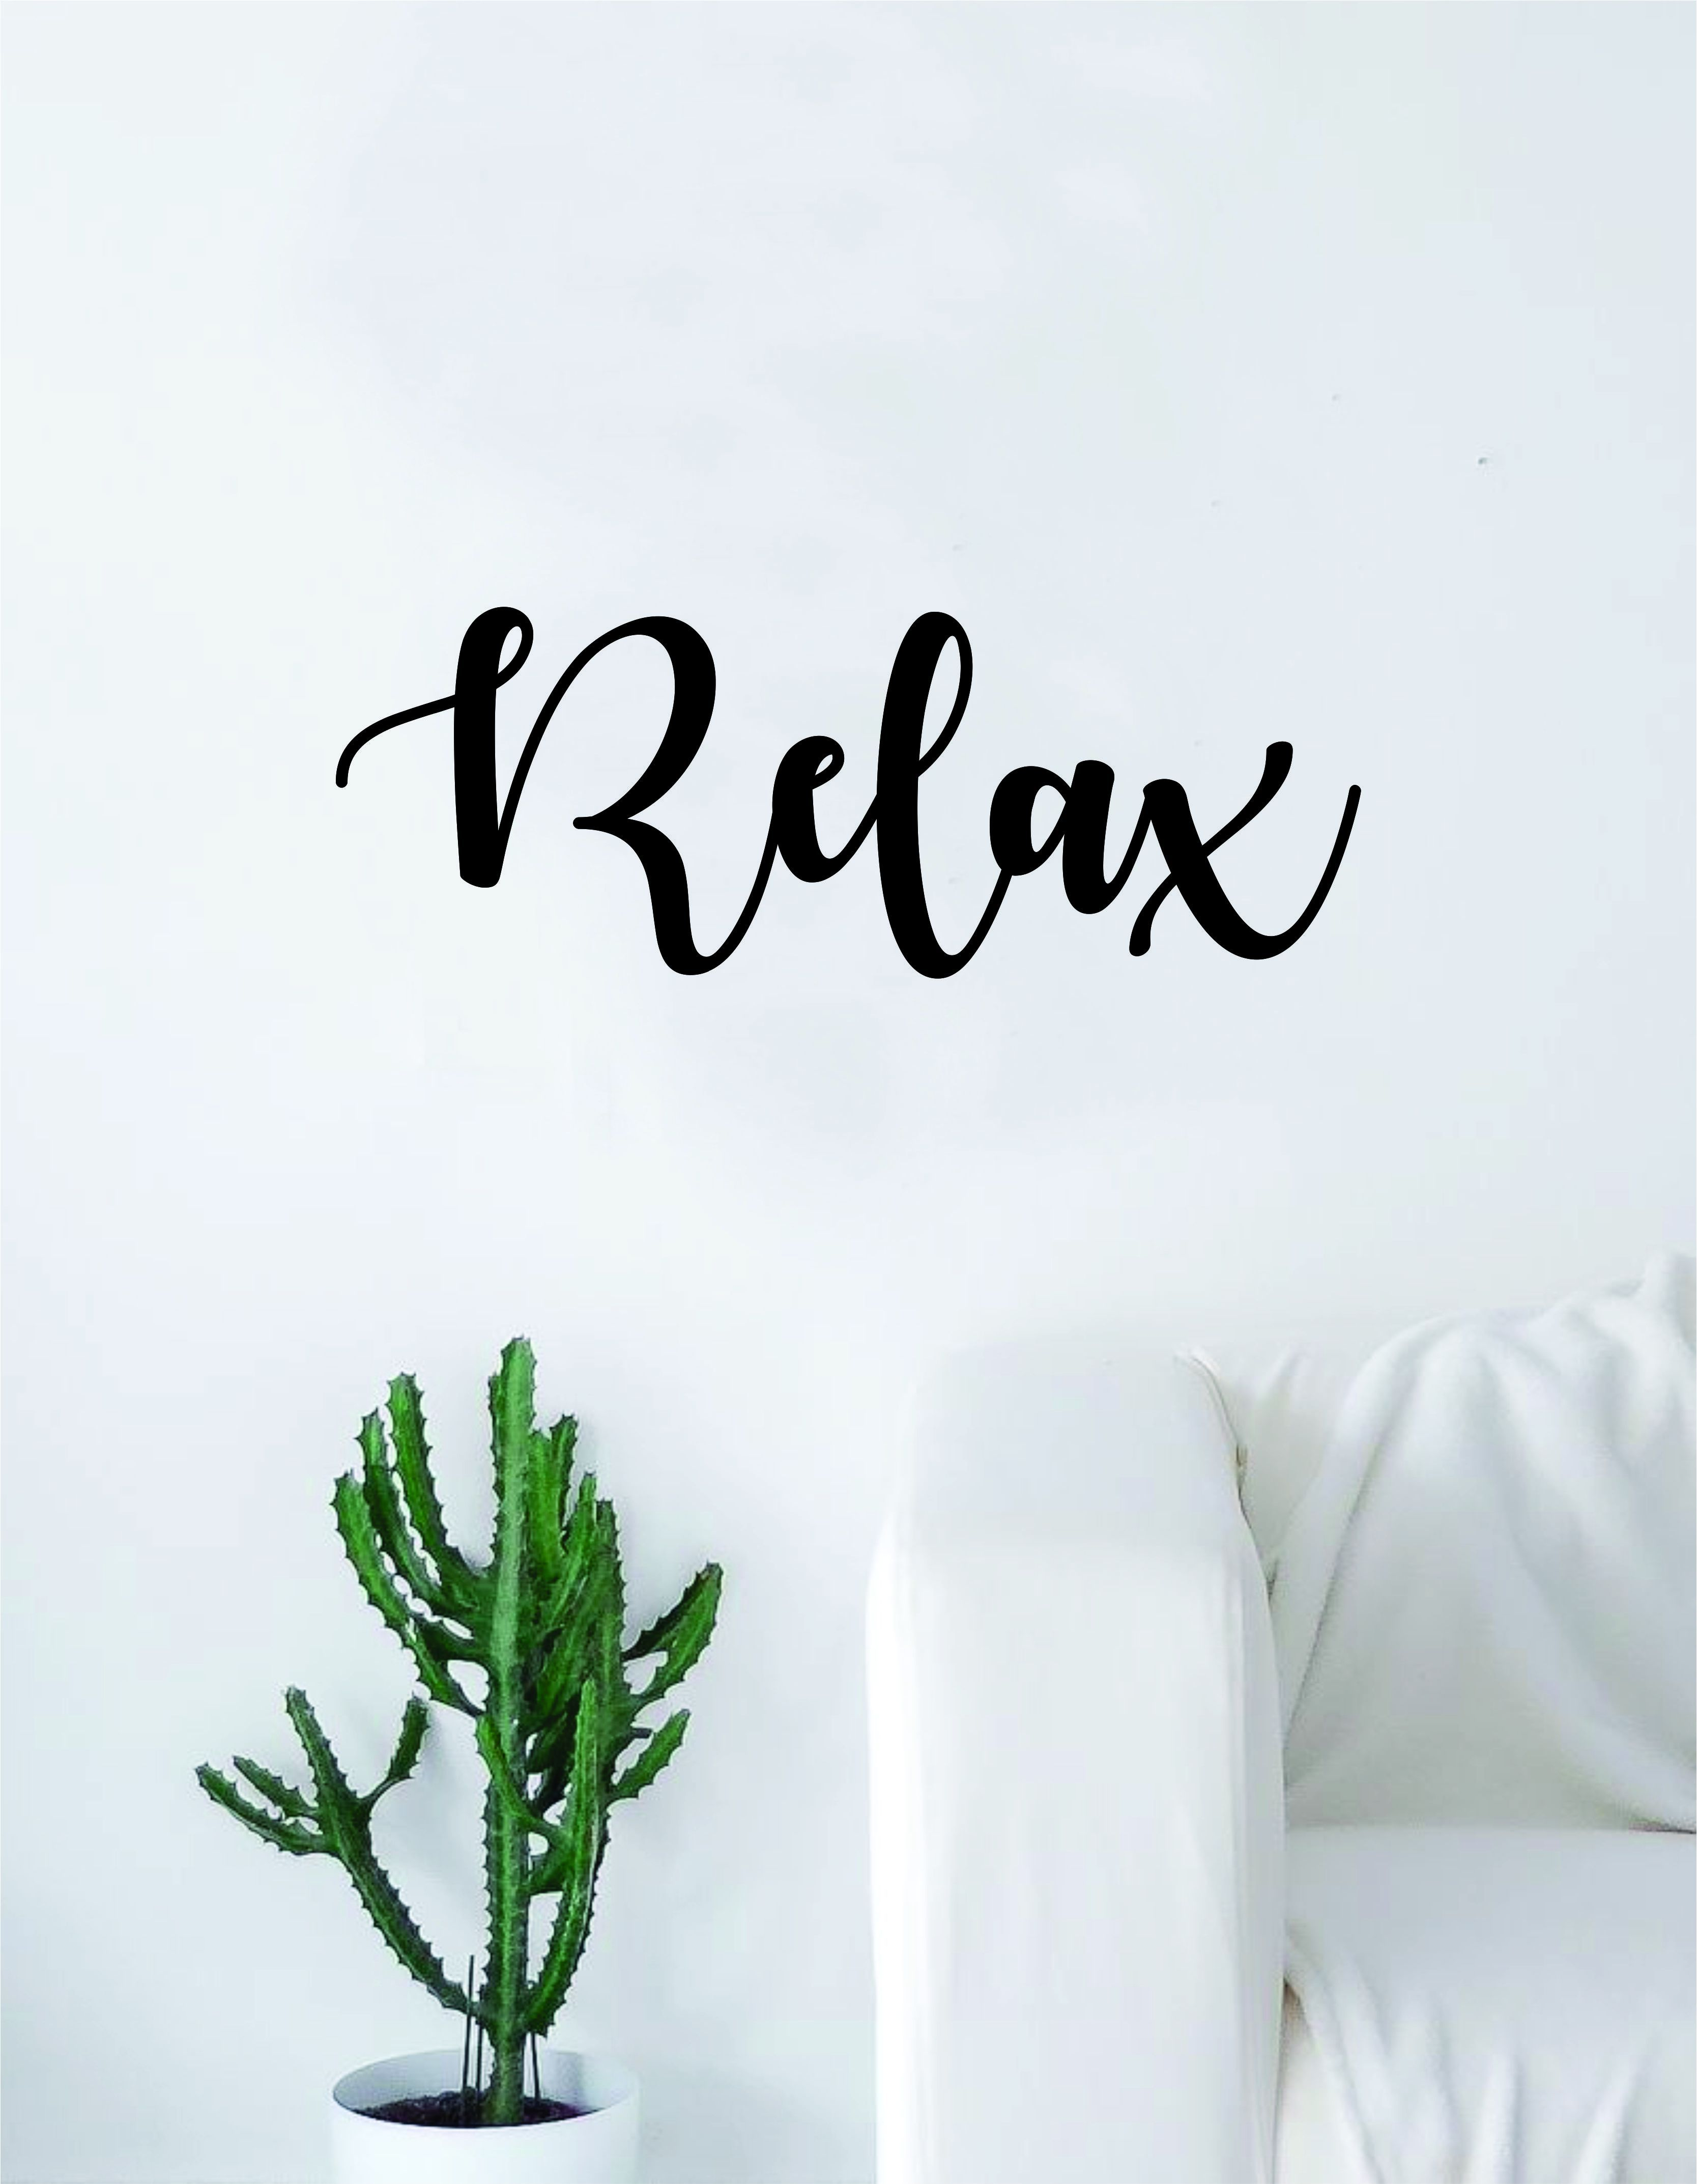 Relax v quote decal sticker wall vinyl art home decor decoration